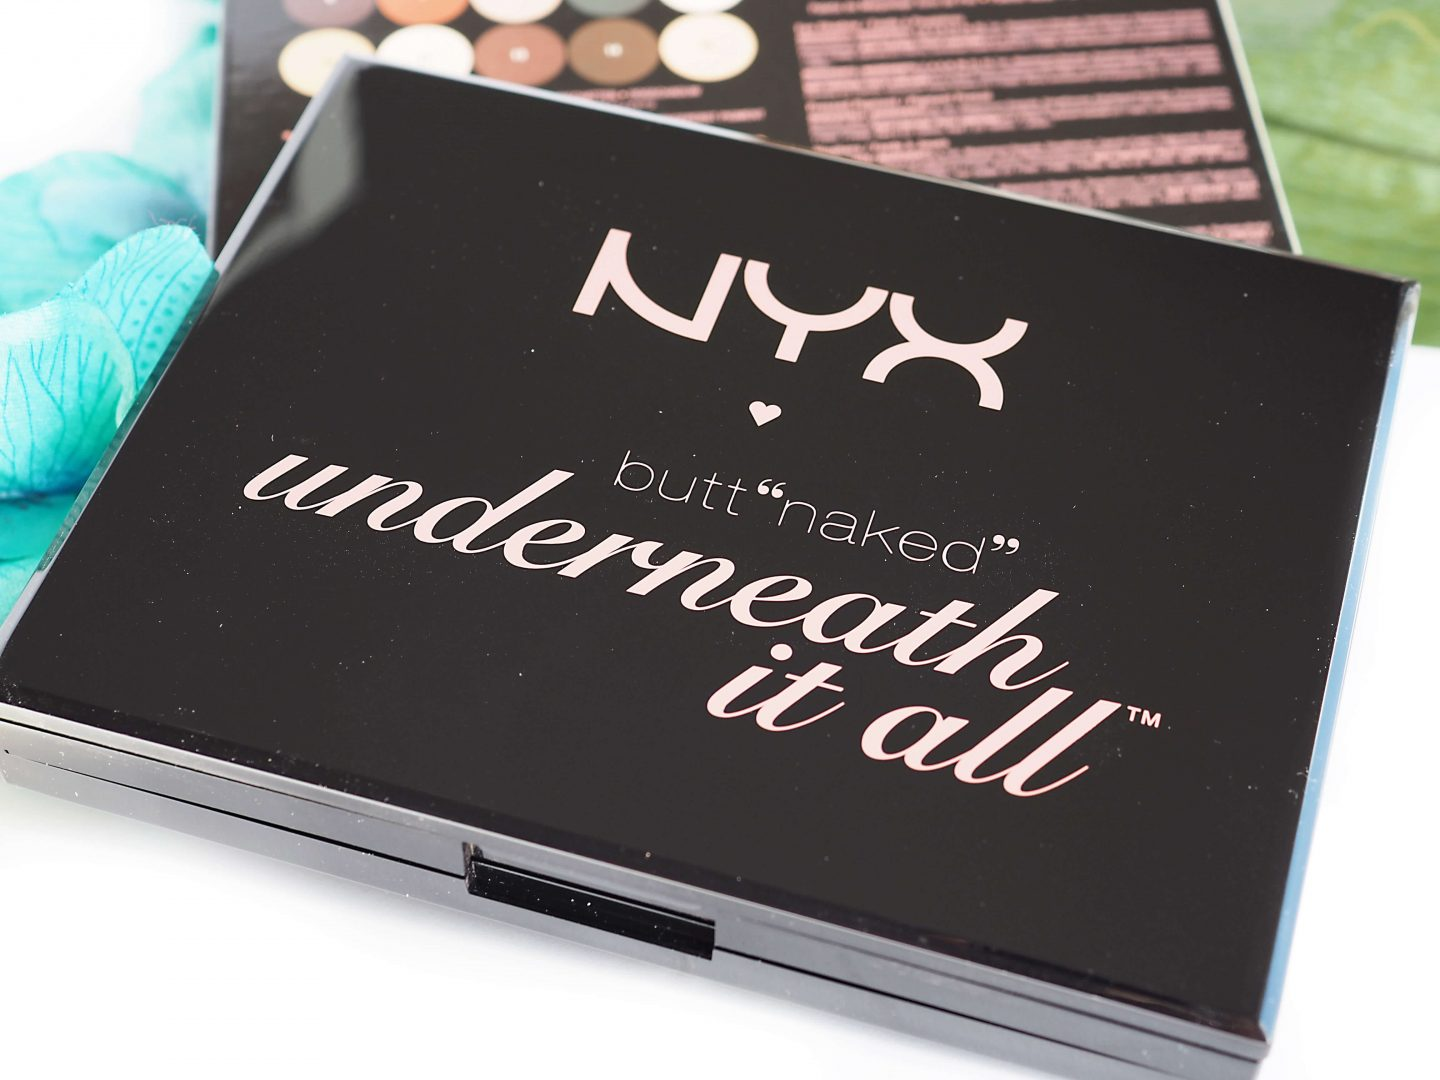 Recenzja NYX BUTT NAKED UNDERNEATH IT ALL